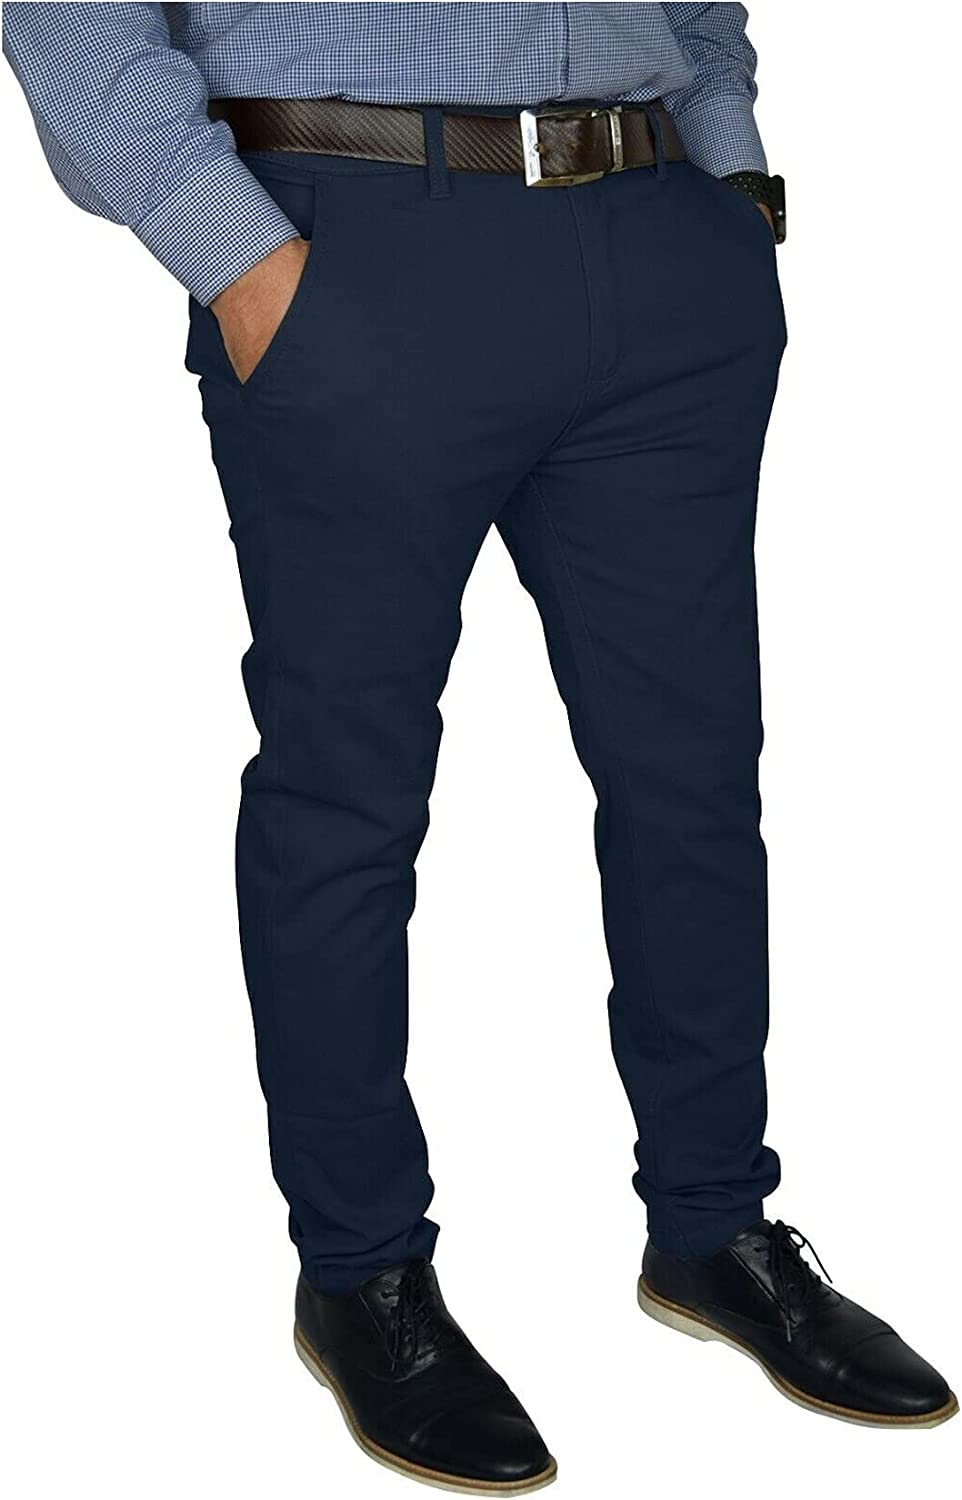 Polo Ralph Time sale Be super welcome Lauren Mens Stretch Fit Chino Pants Slim